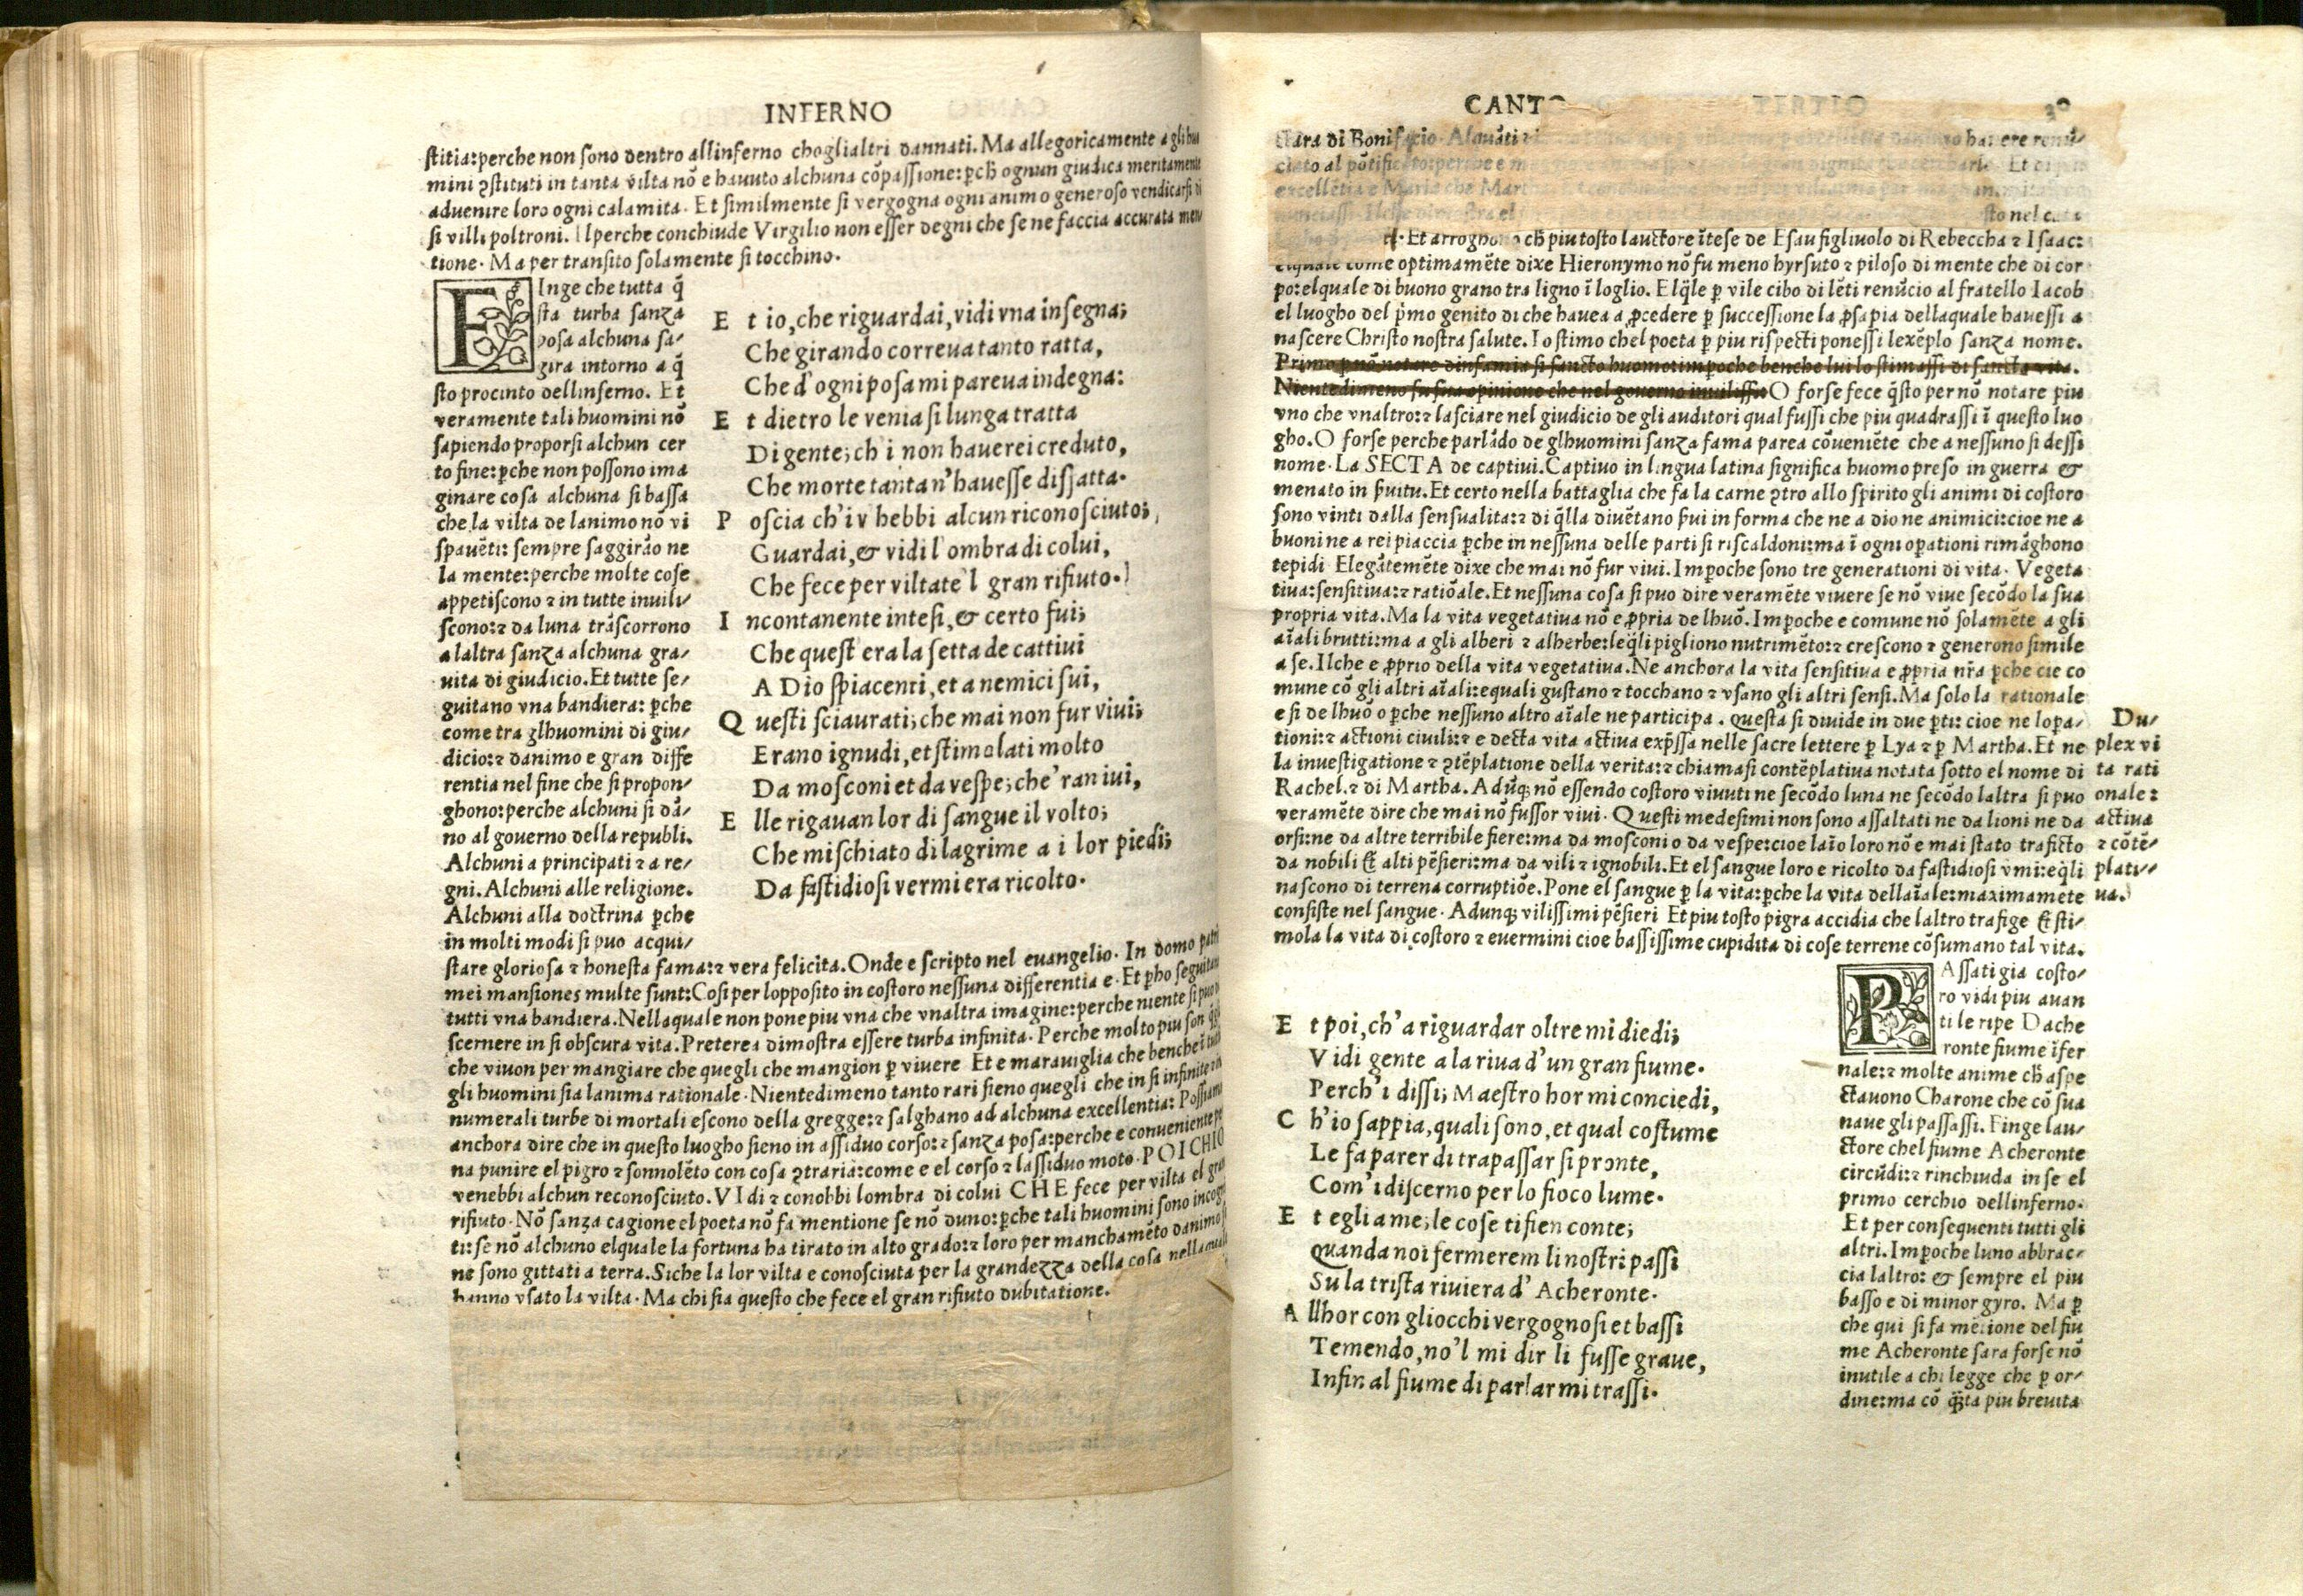 Image of passages redacted in ink and by the pasting of paper on folio 29v and 30r